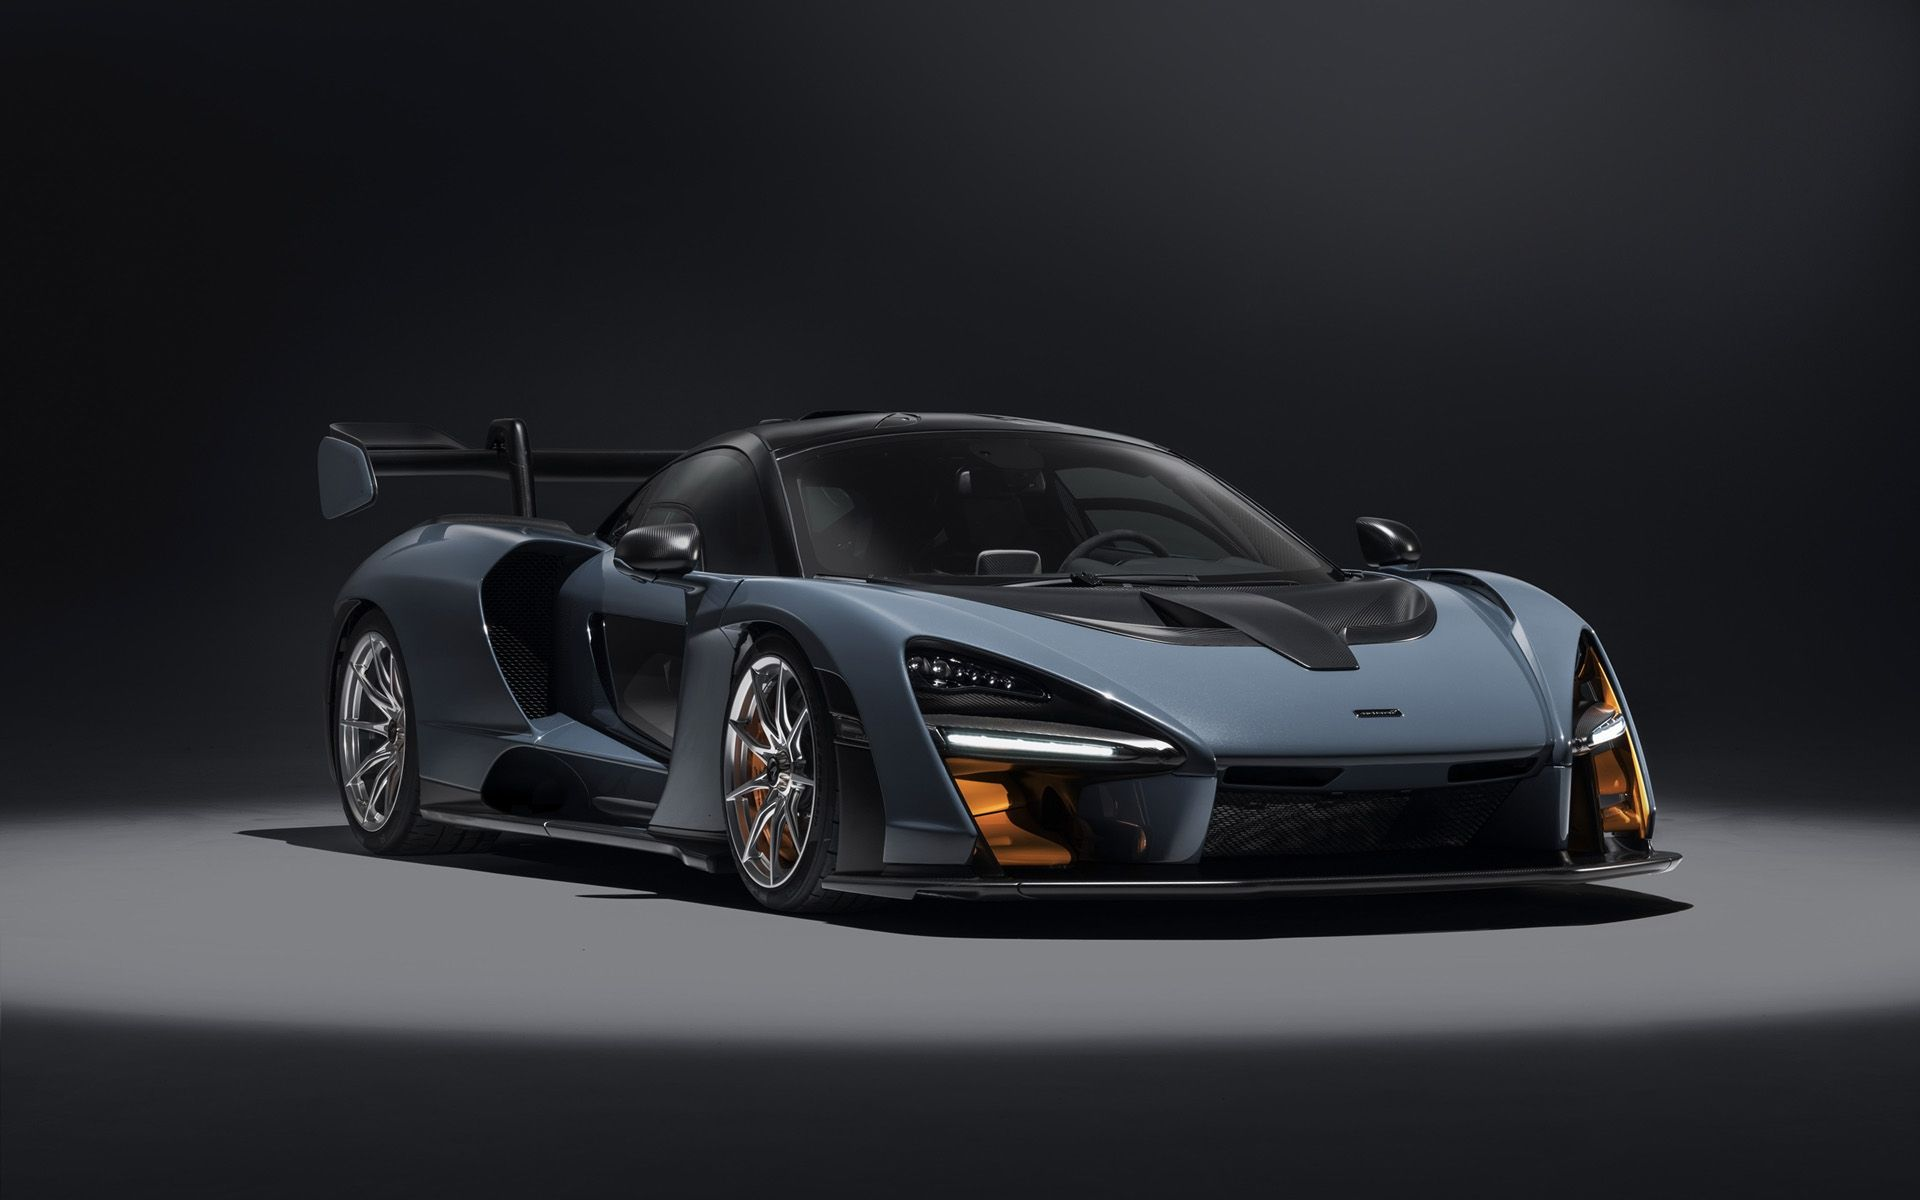 2018 Mclaren Senna Carbon Theme And Victory Grey Serious Wheels Mclaren Cars Super Cars Sports Car